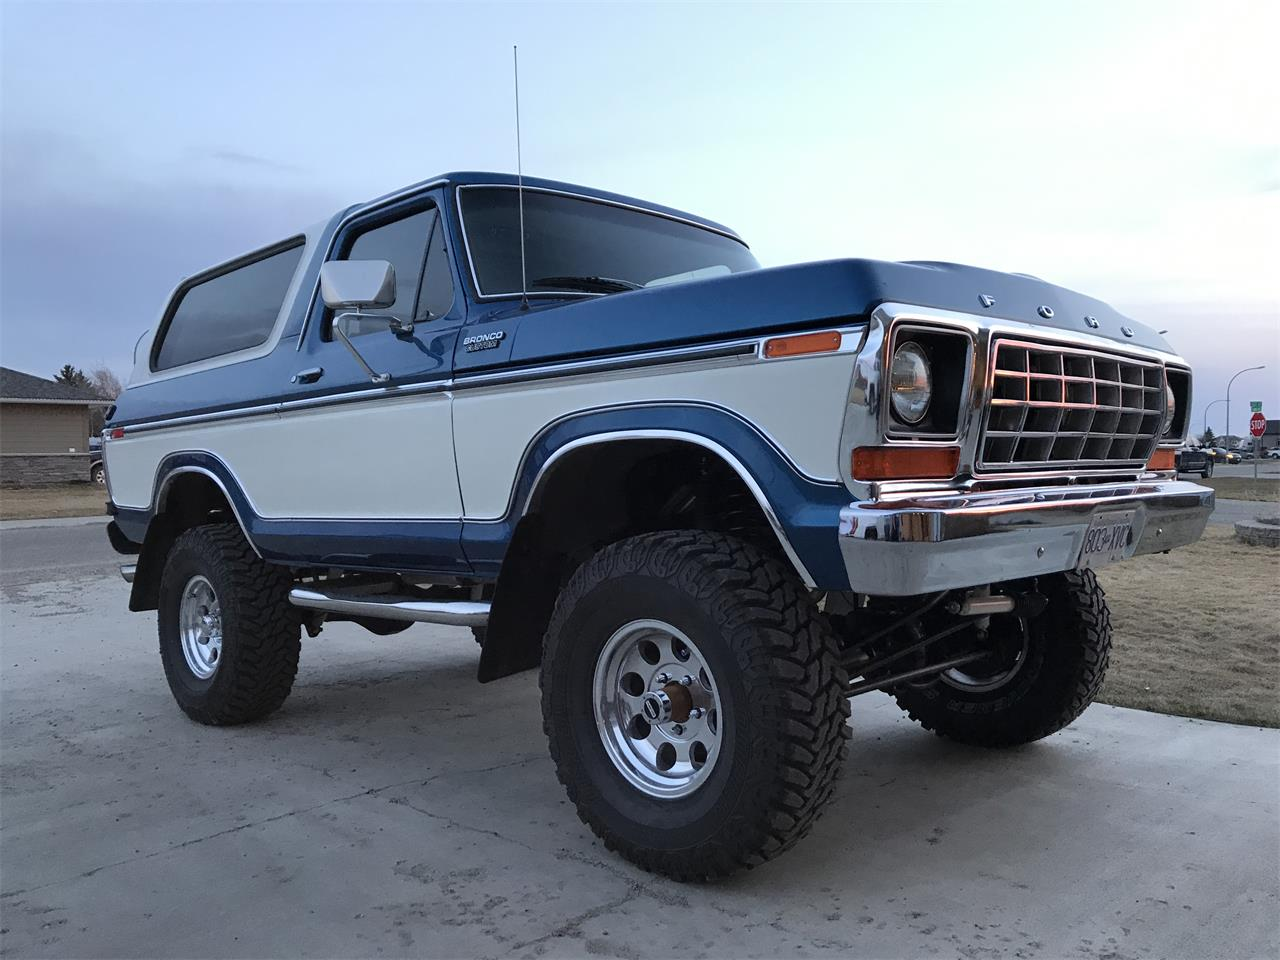 Large picture of 78 bronco l9r8